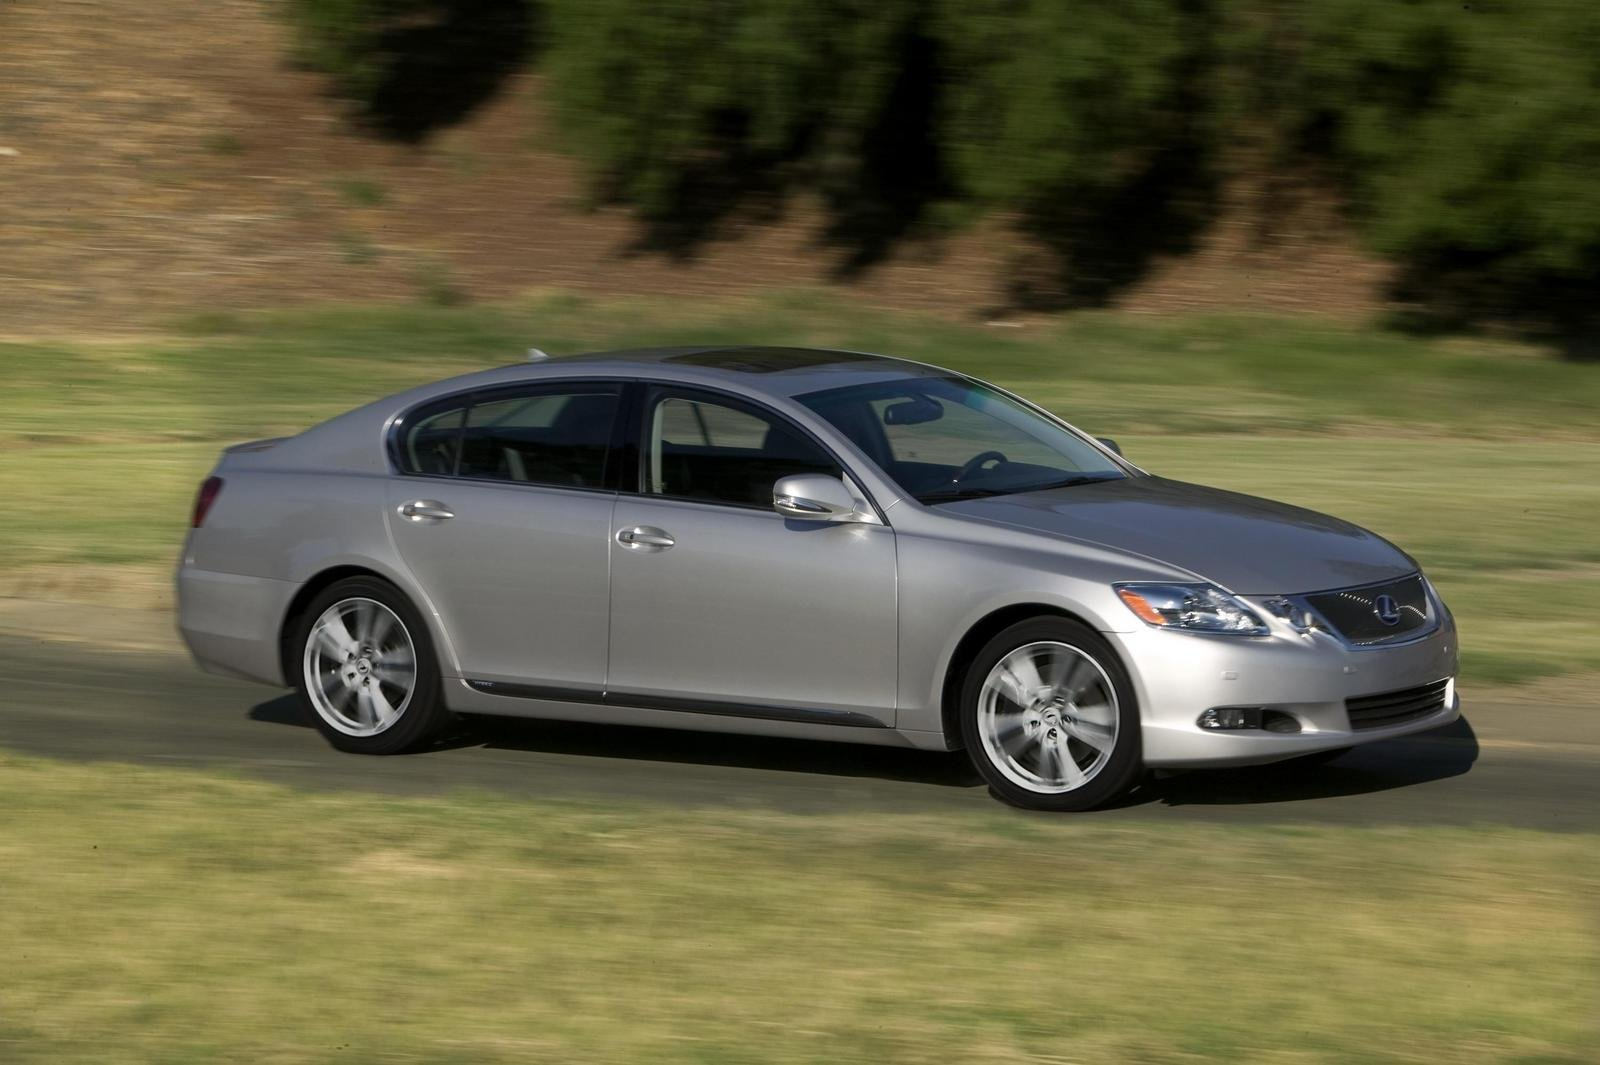 2008 lexus gs 450h picture 197287 car review top speed. Black Bedroom Furniture Sets. Home Design Ideas